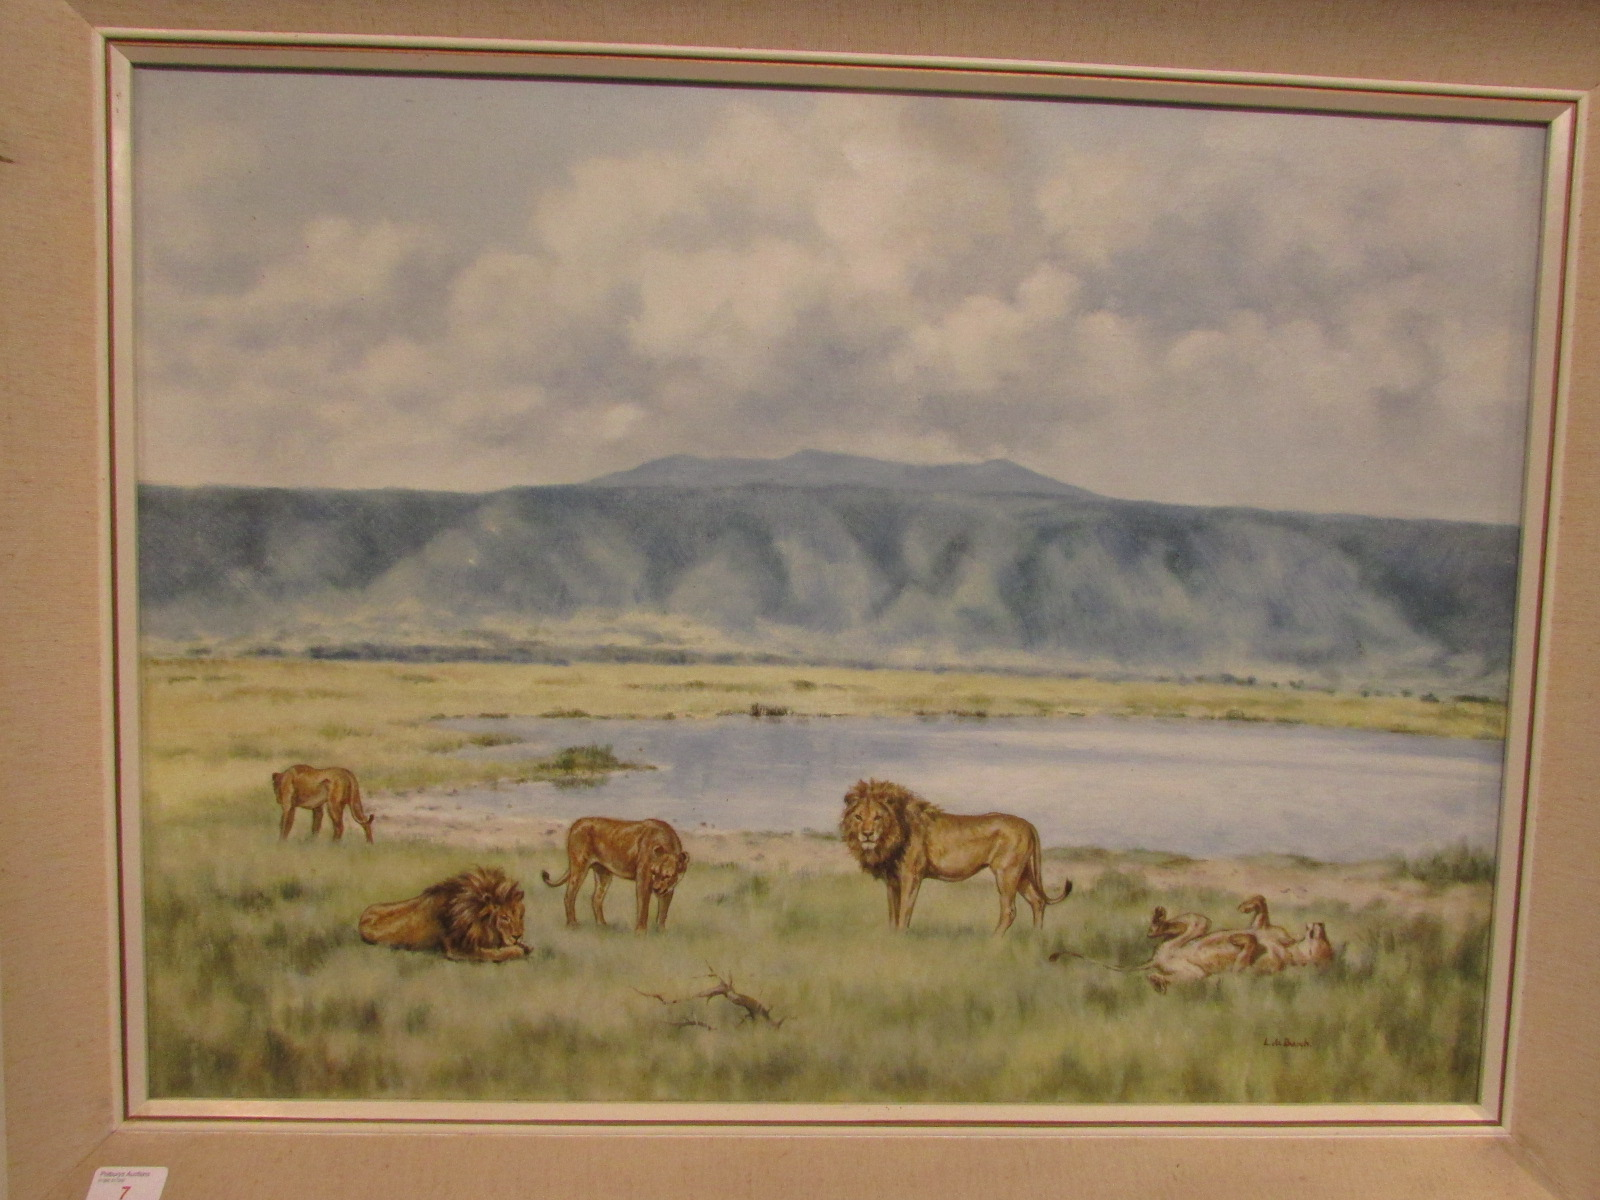 Lot 7 - African landscape with lions, oil on canvas, signed L de Burgh lower right, (55cm x 75cm), in a